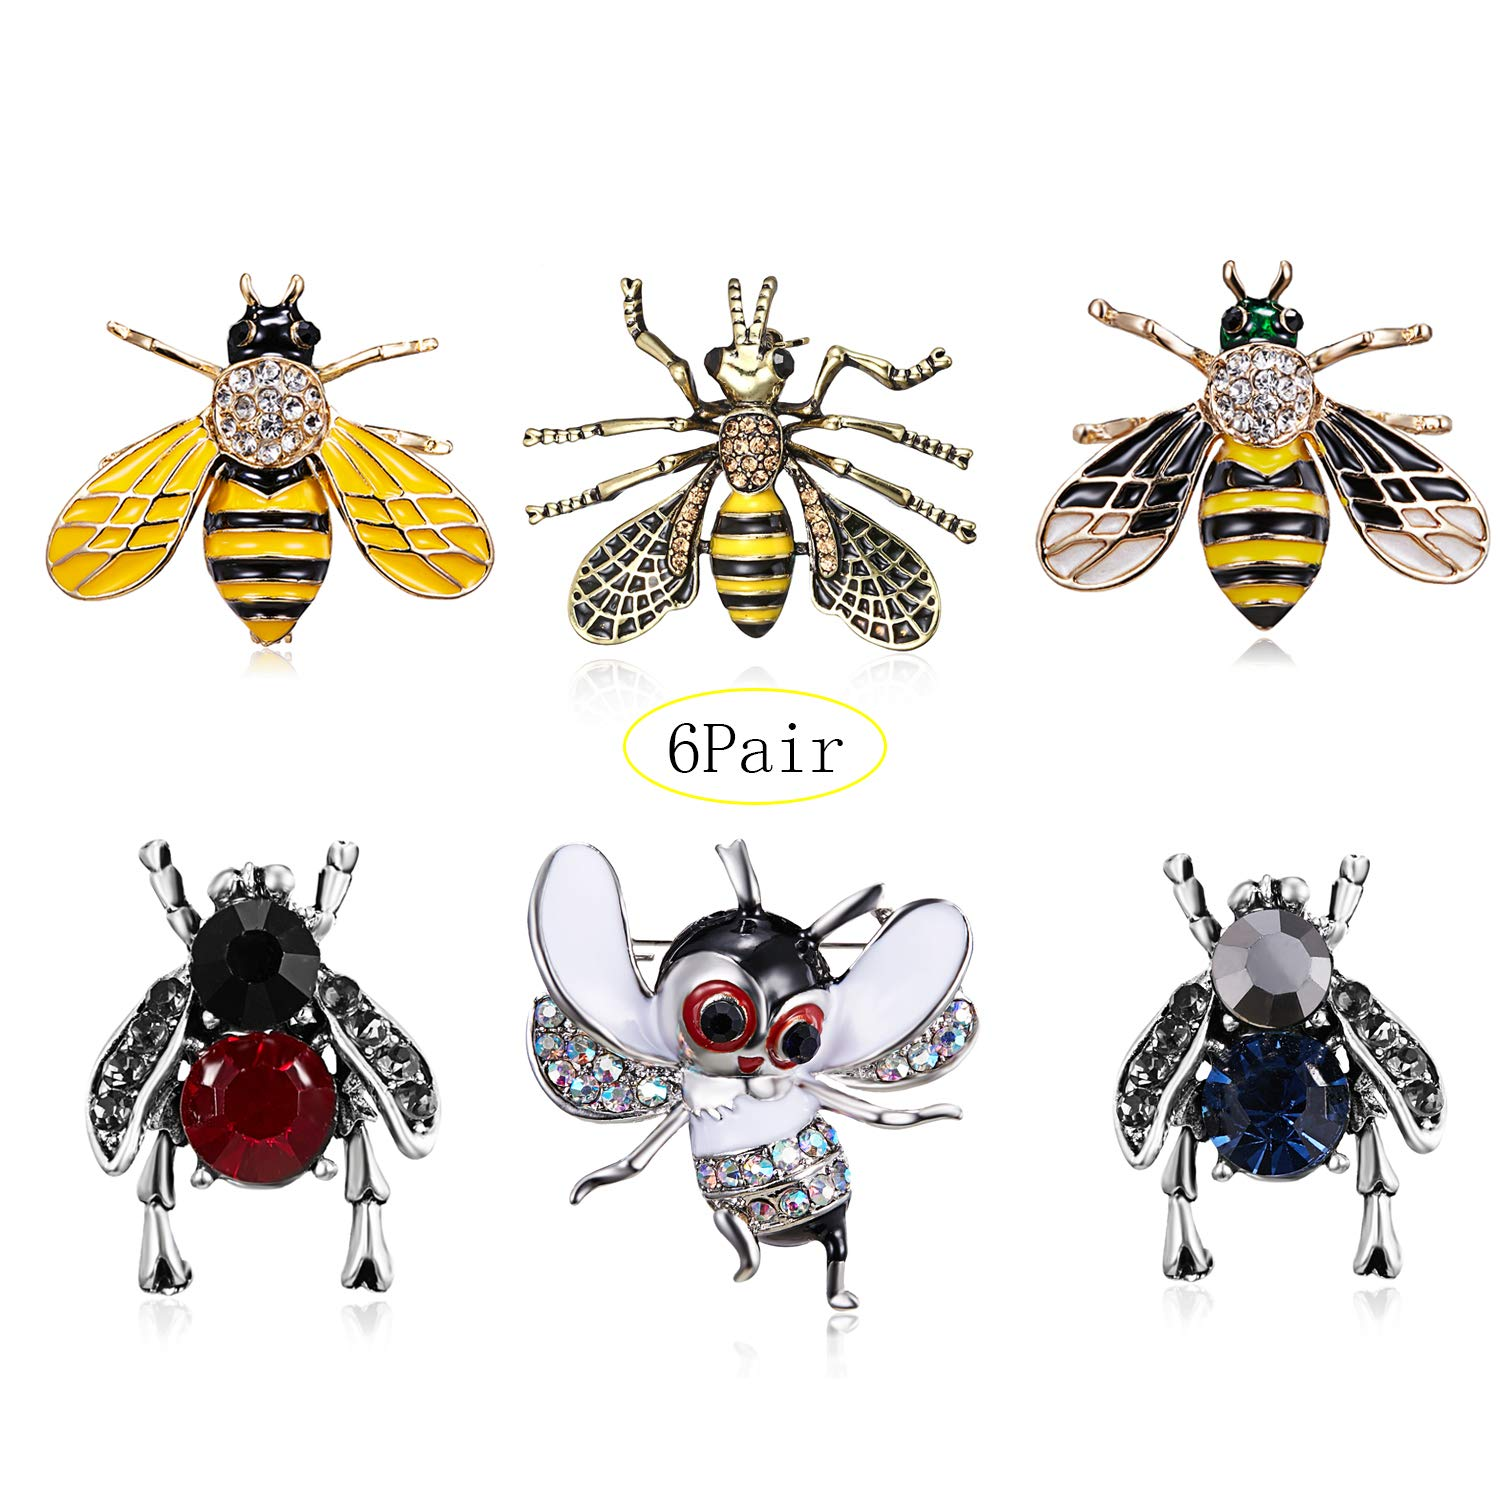 3Pcs Cute Honeybee Enamel Brooches Pin Antique Crystal Rhinestones Bee Scarf Clips for Women Girls (Style5) by beemean (Image #1)